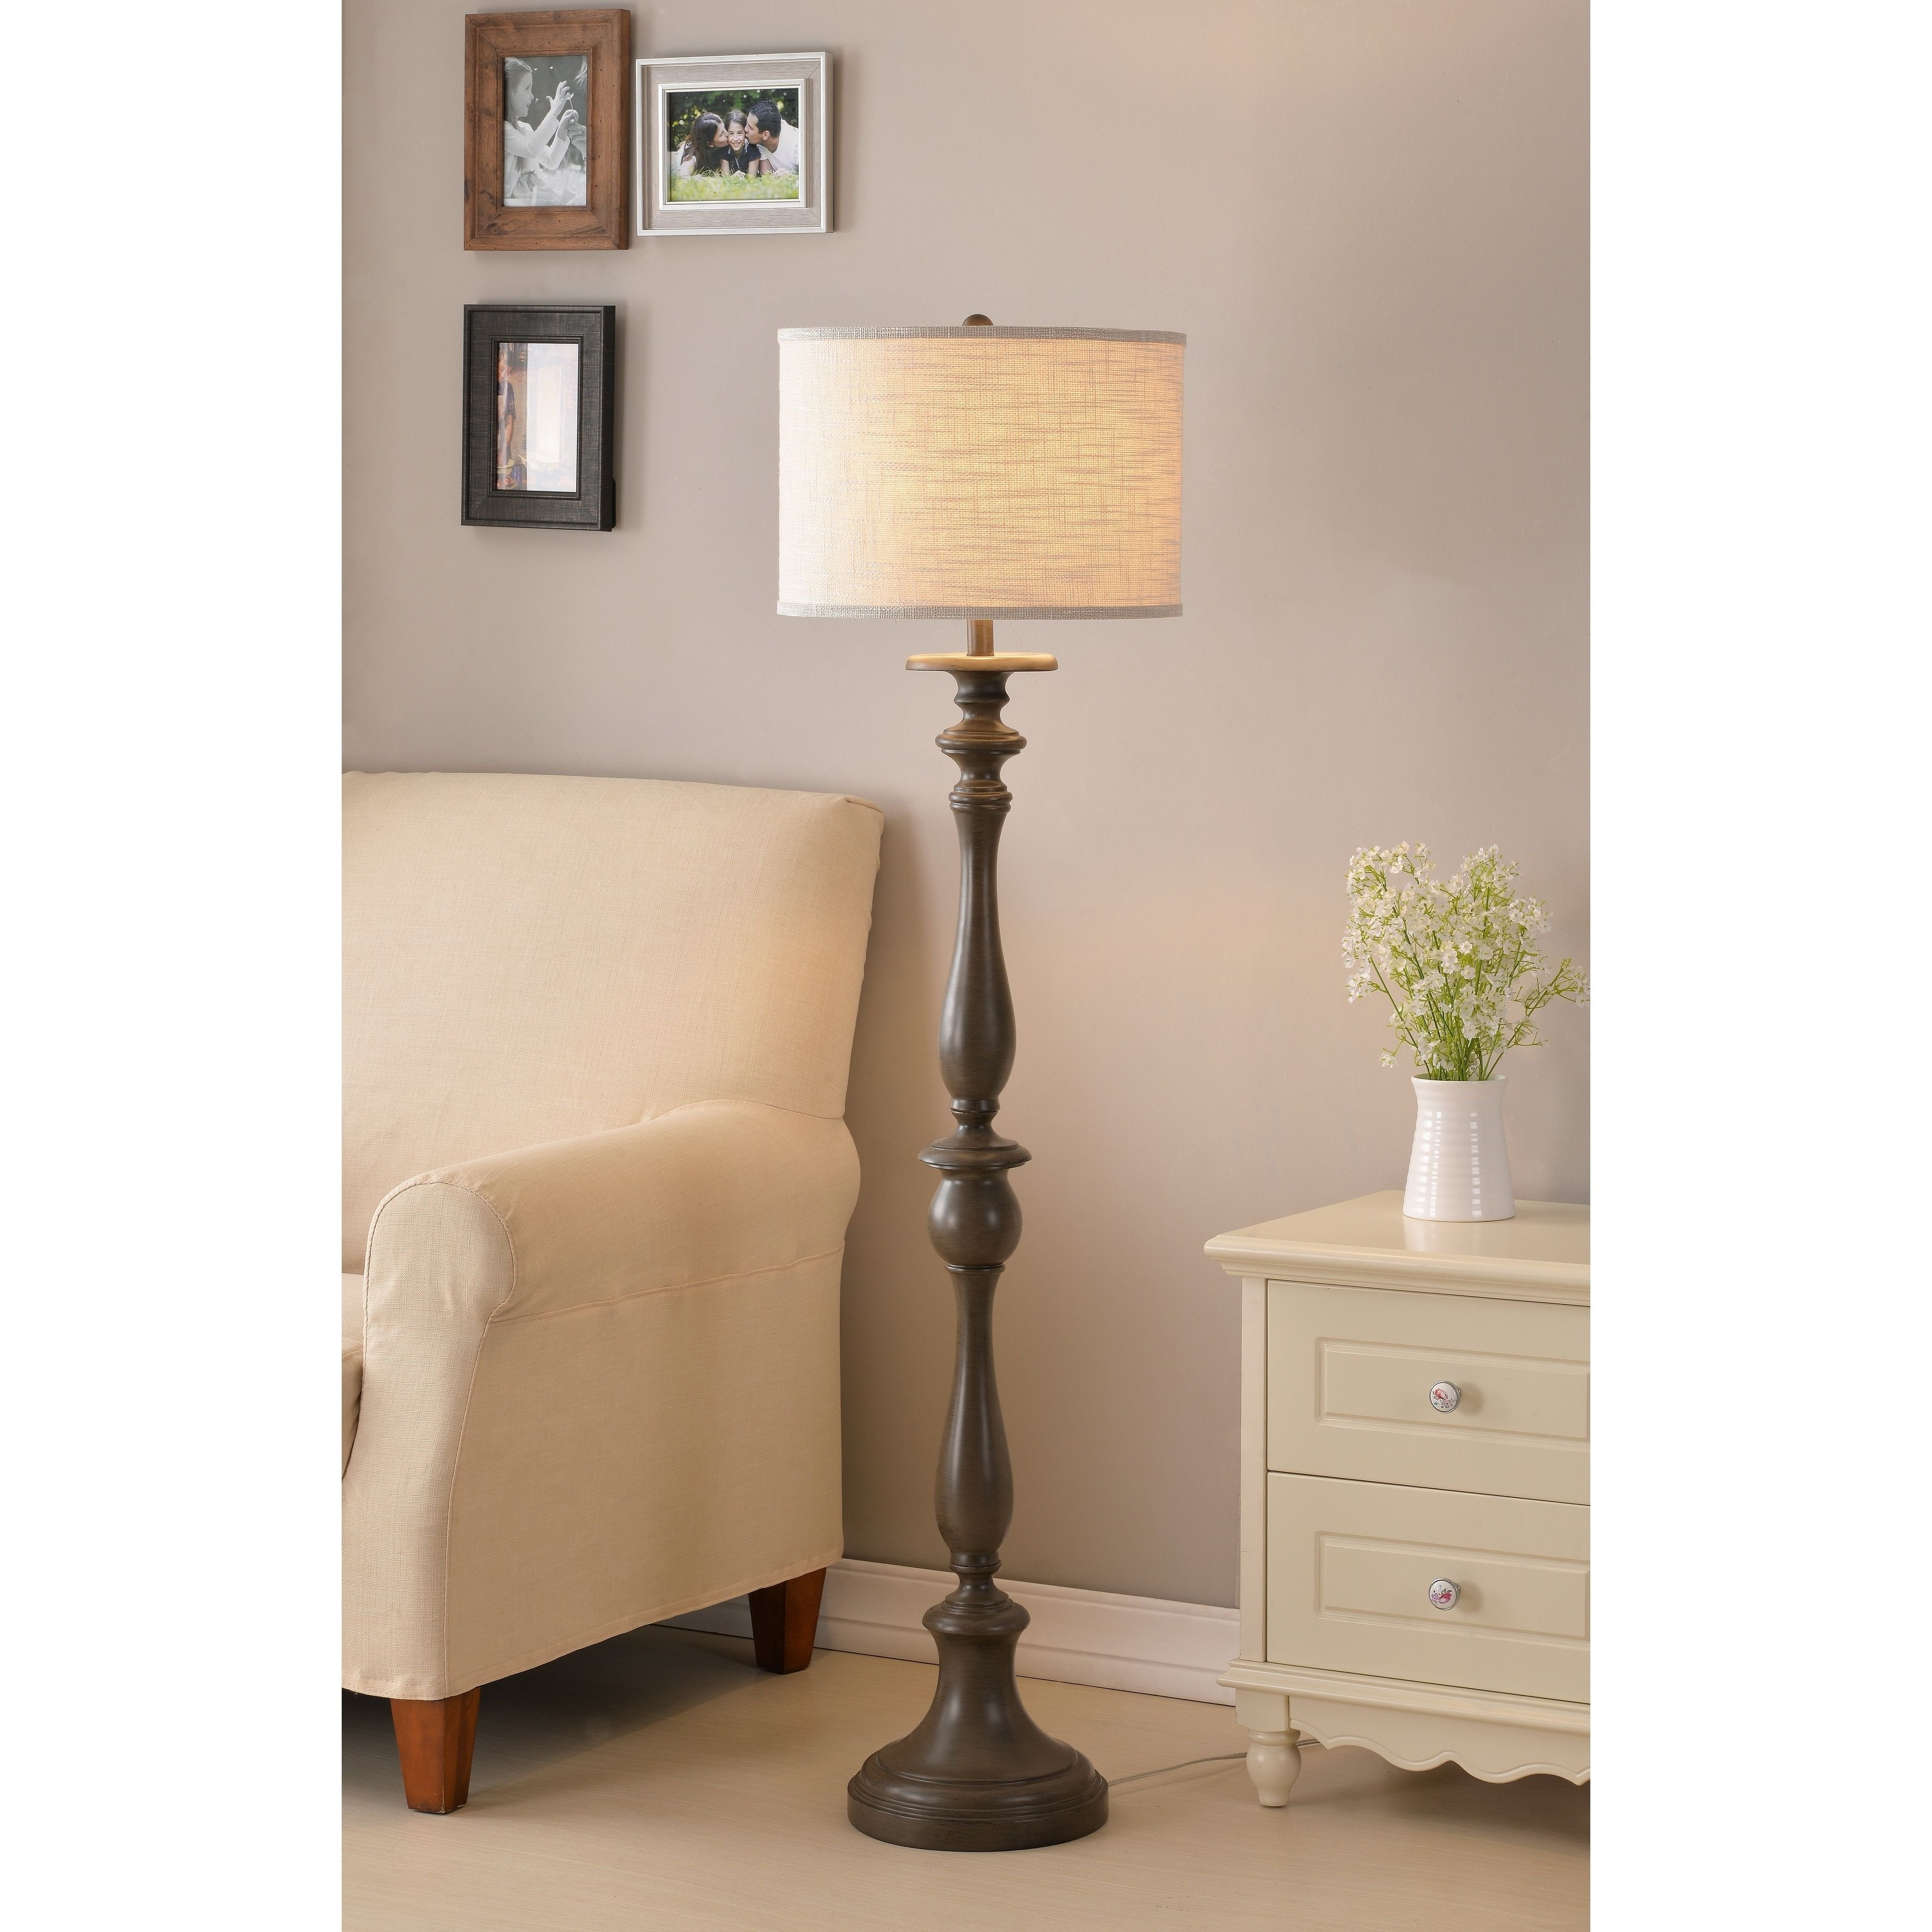 Design Craft Luz 57 5 Floor Lamp Weathered White Products In